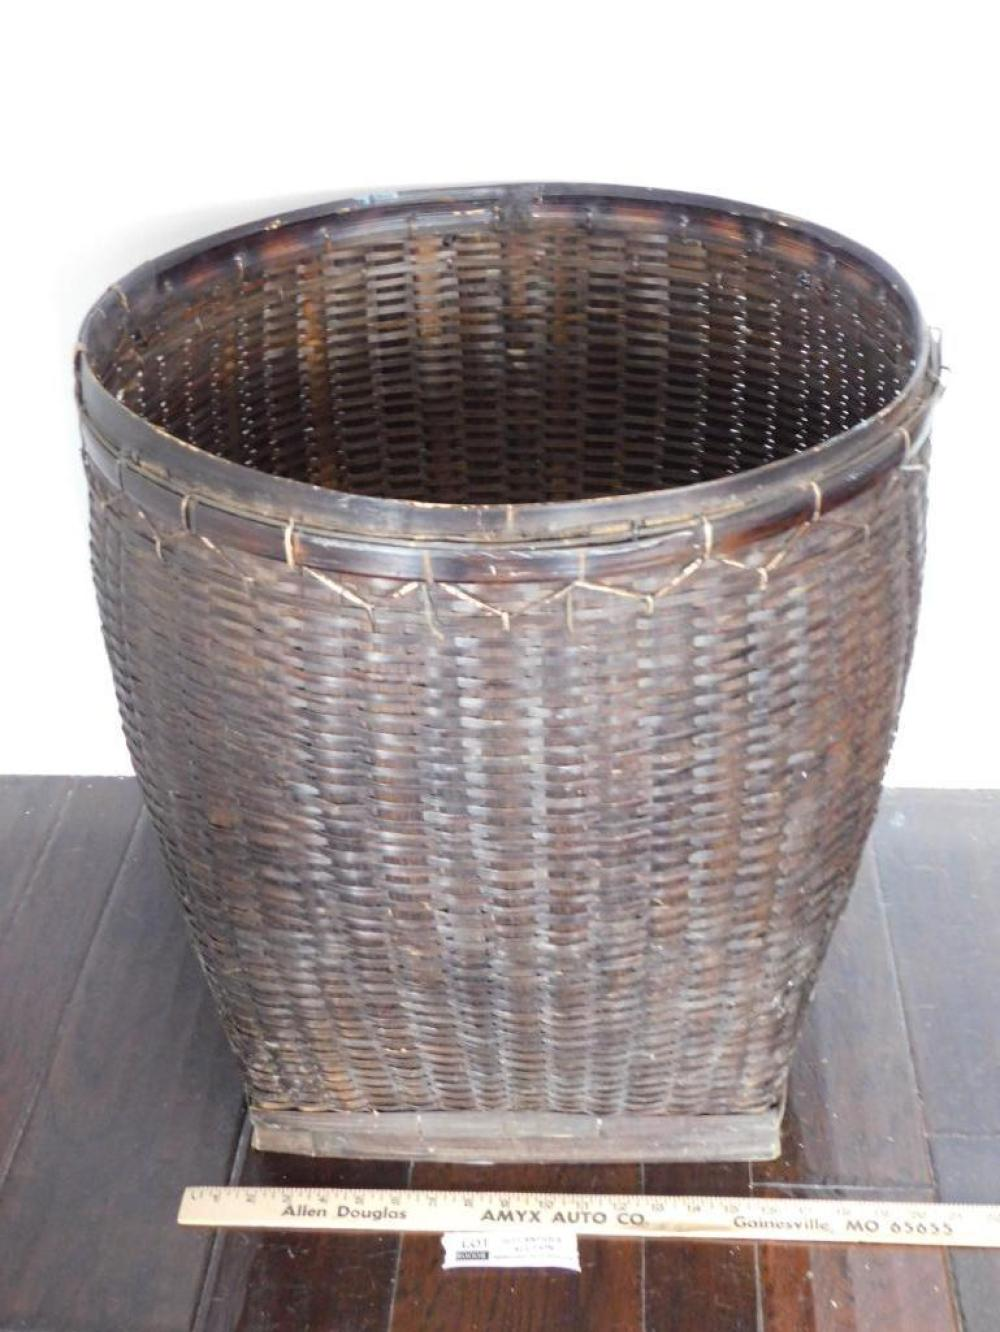 BASKET 23 INCHES TALL SQUARE BOTTOM PRIMITIVE VINTAGE ANTIQUE NEW ENGLAND